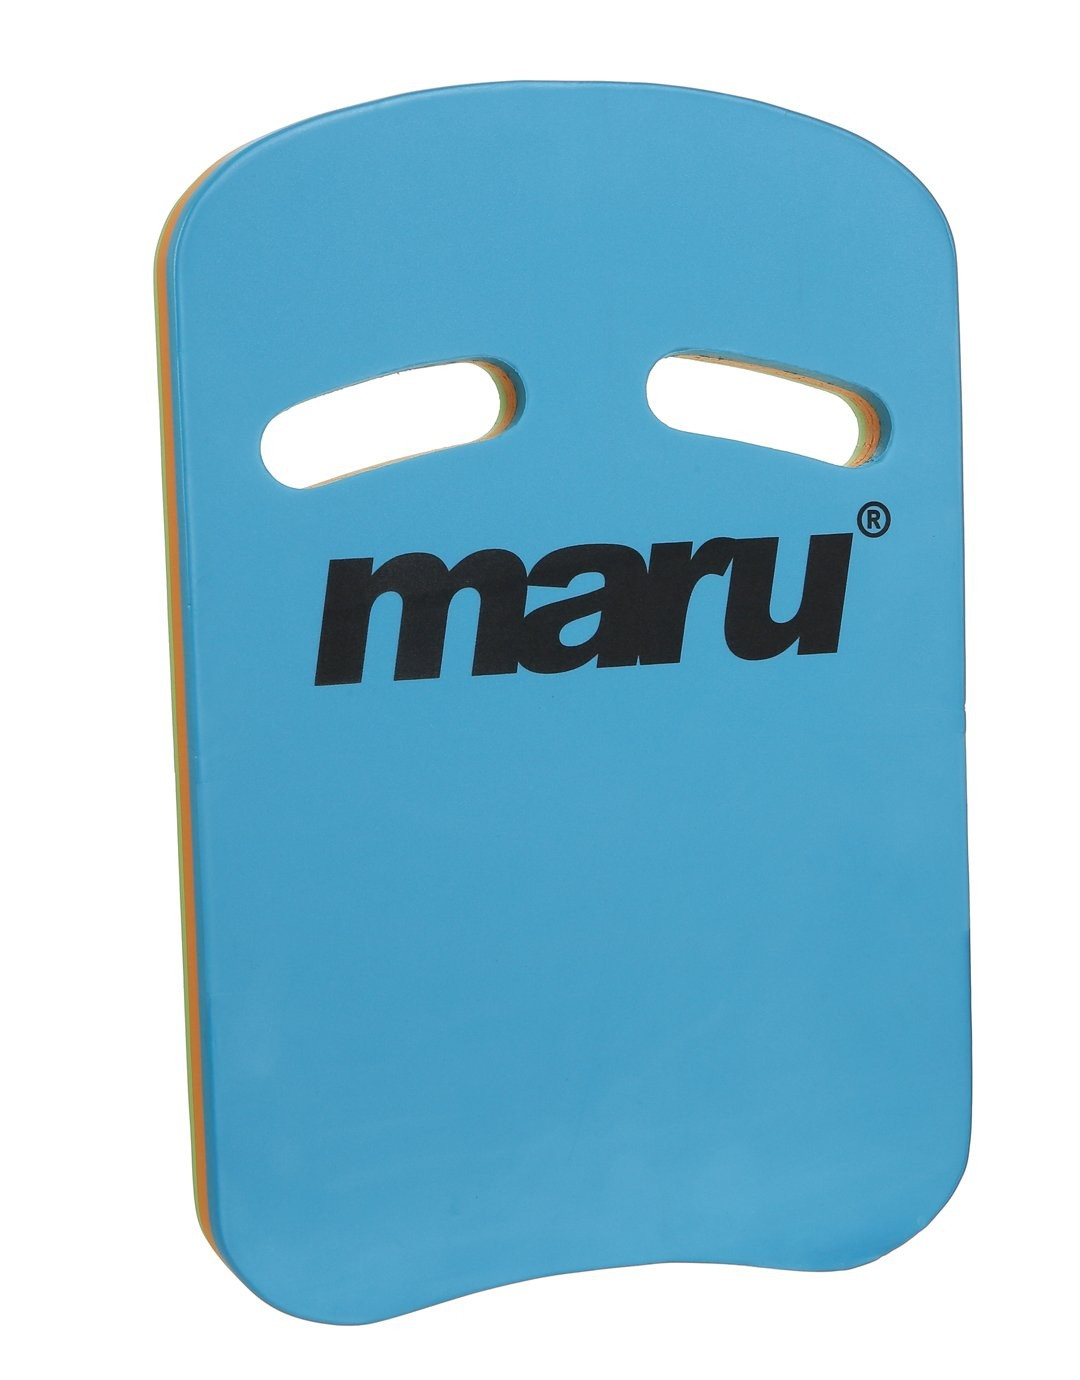 assorti Maru Two Grip kickboard